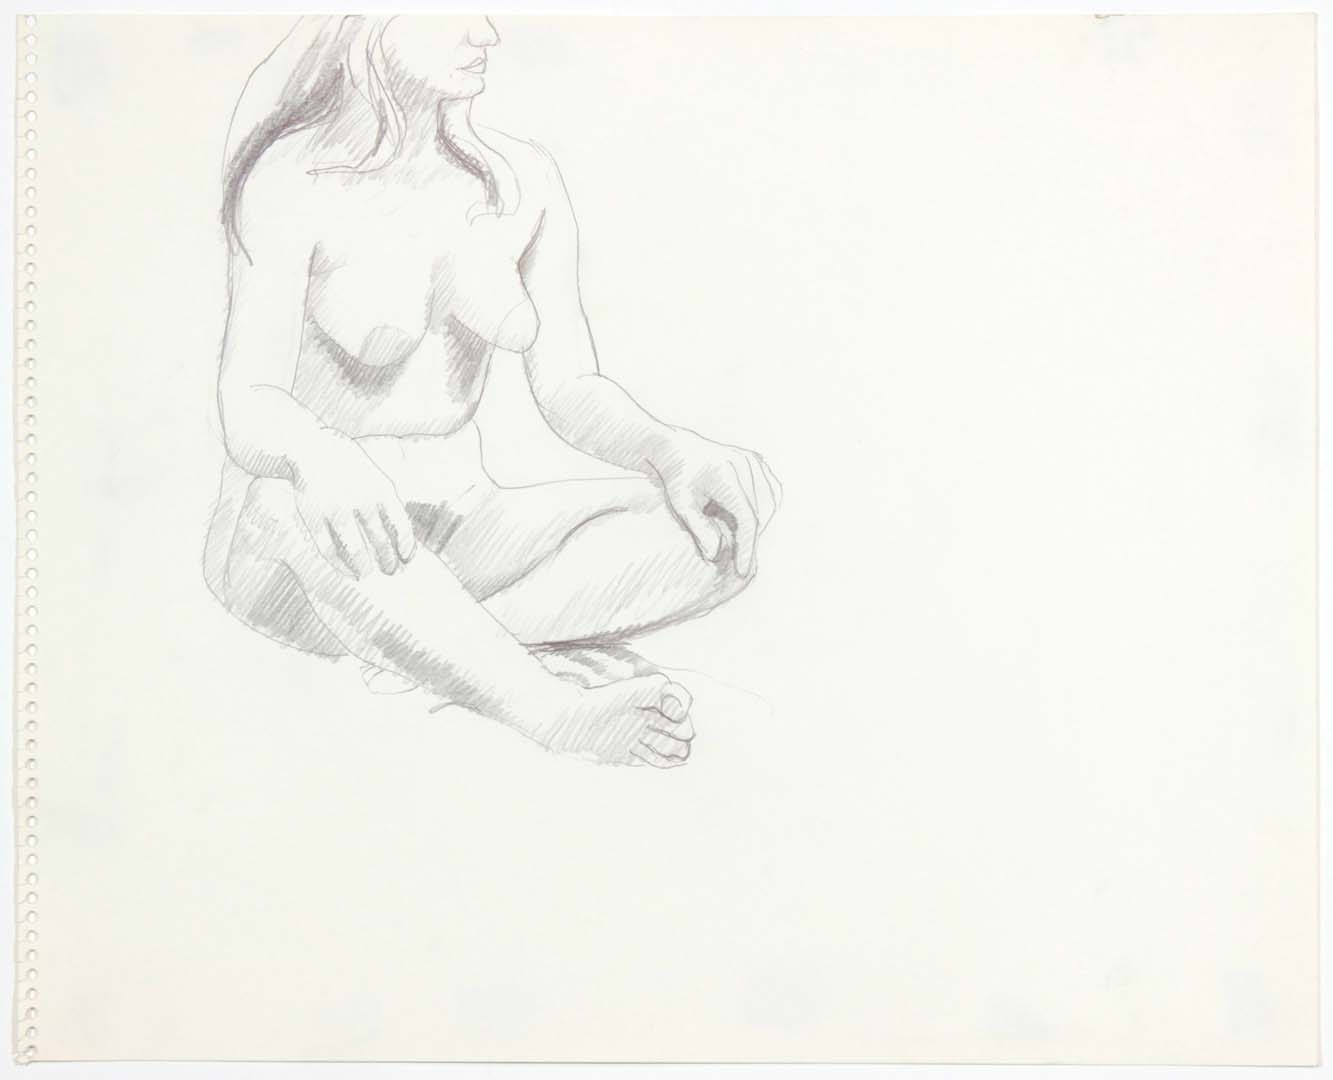 Seated Female with Crossed Legs Pencil 13.75 x 17